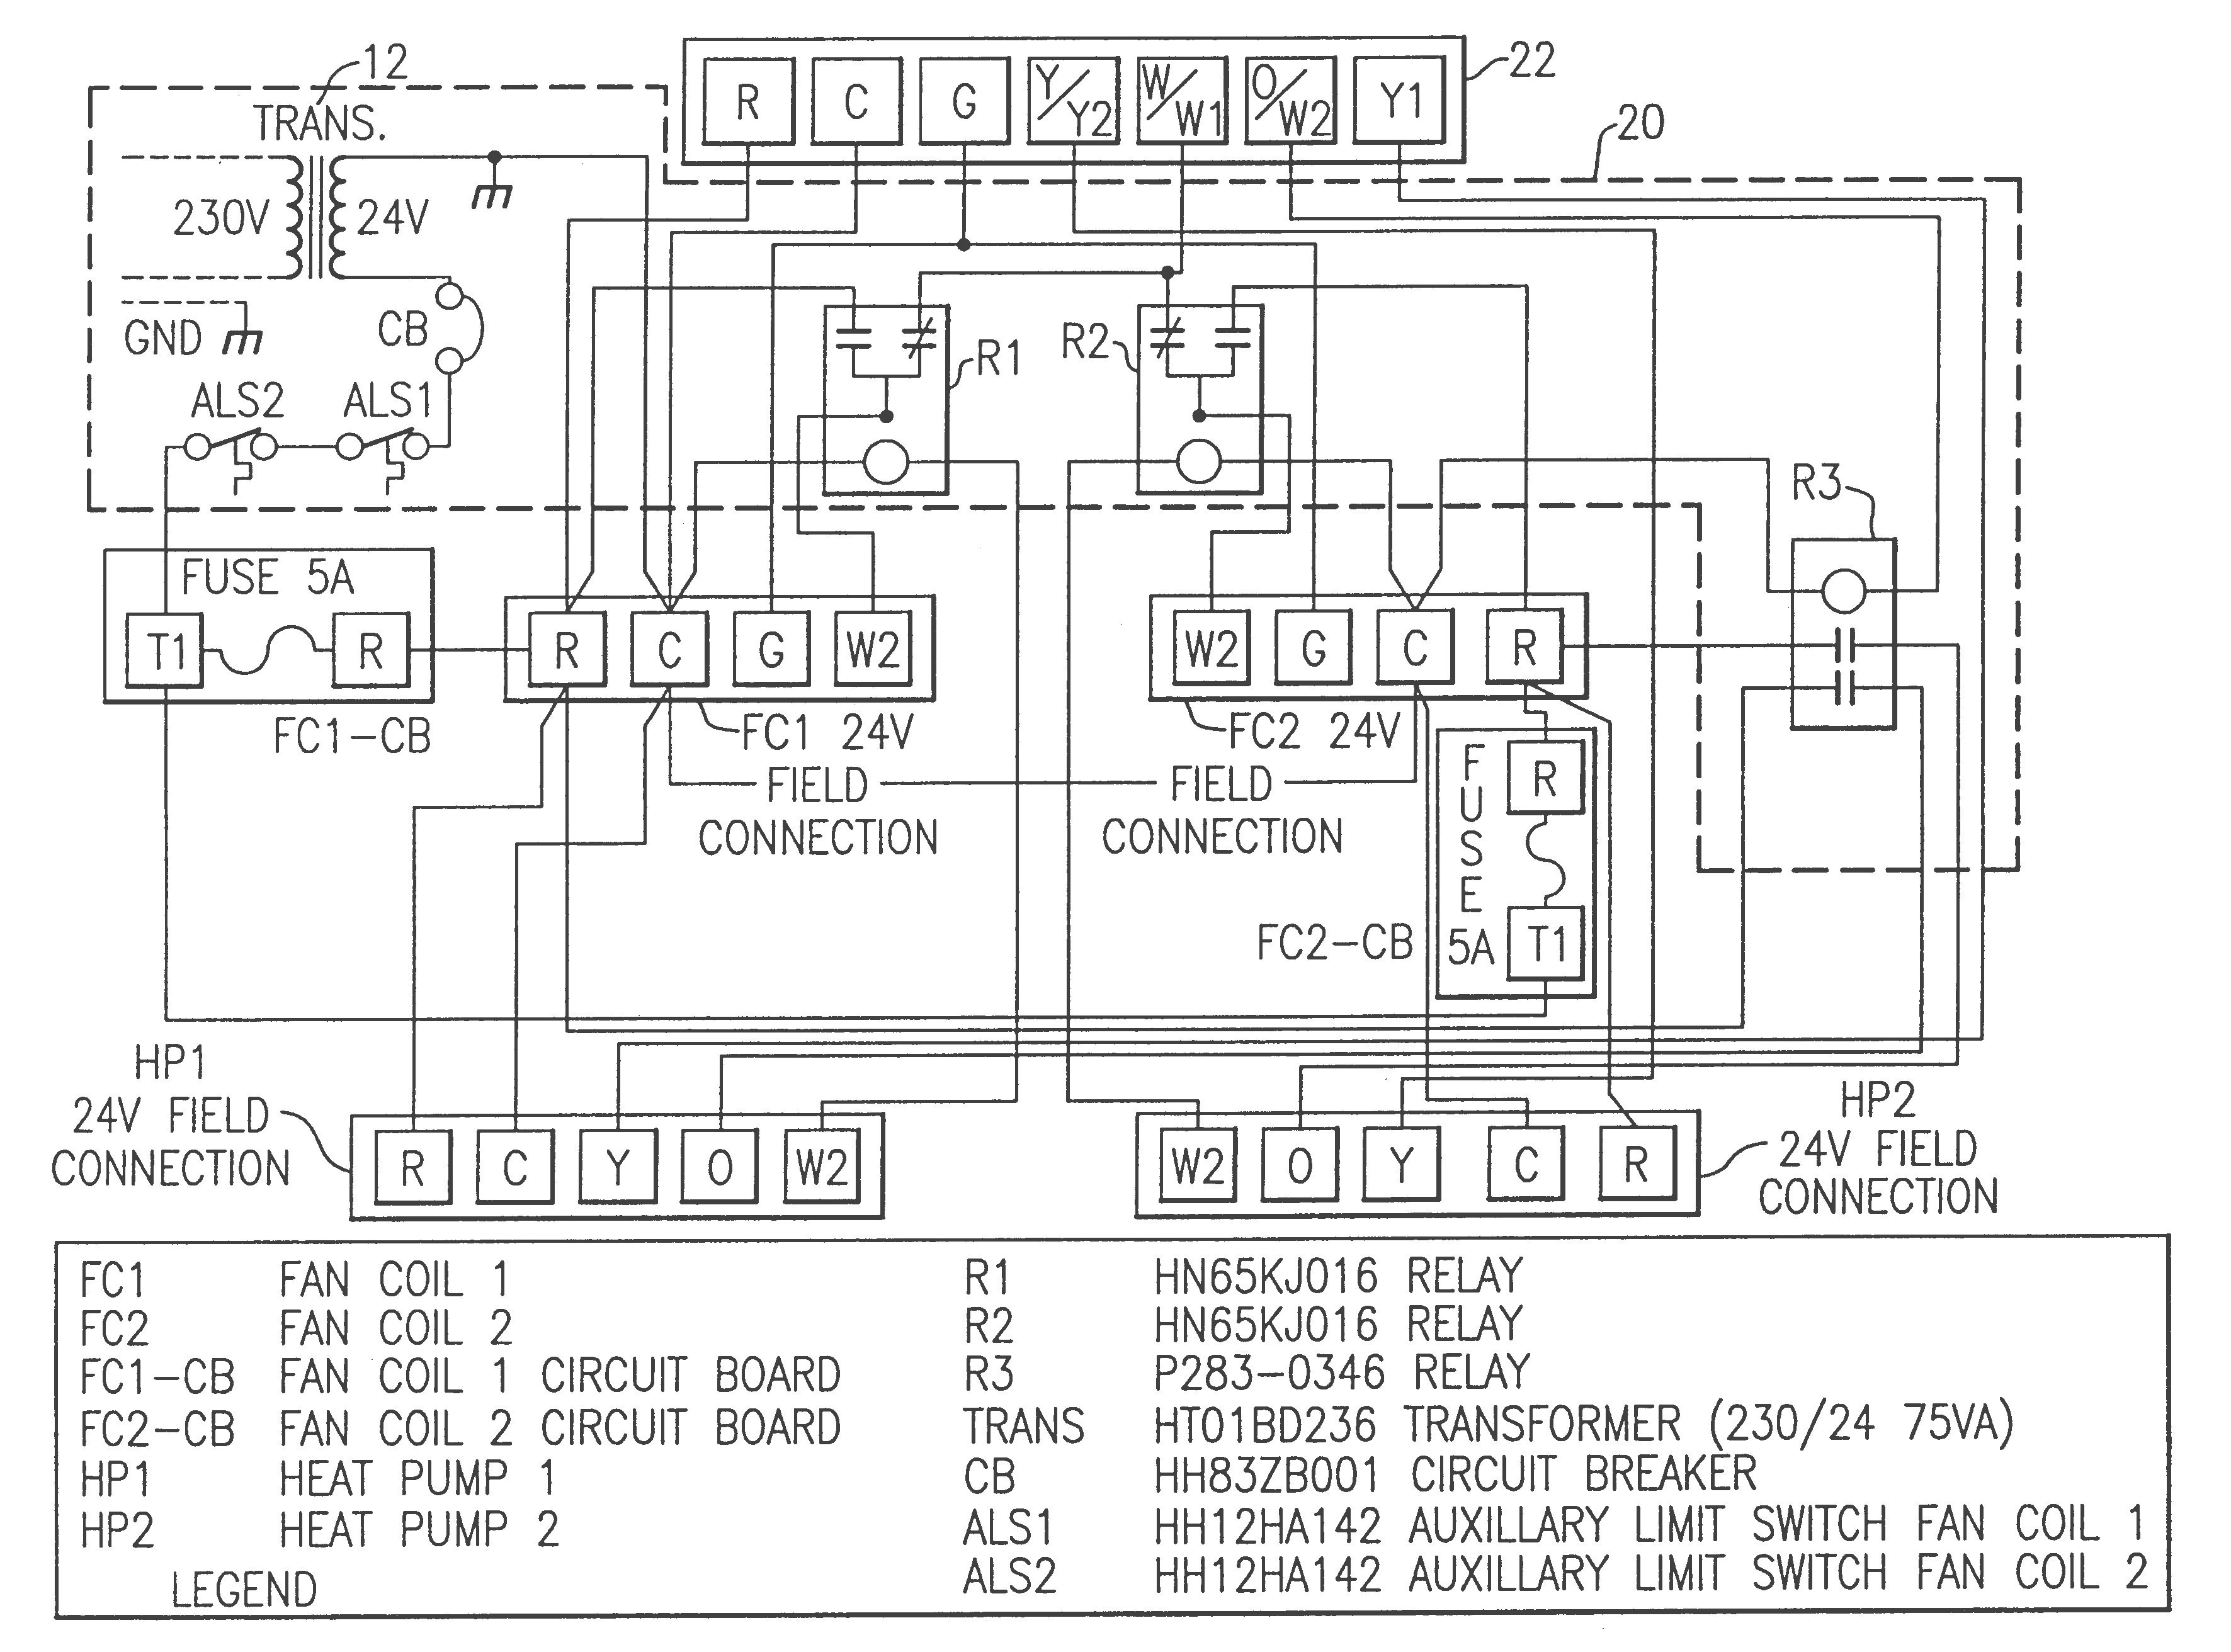 electric heat strip wiring diagram Collection-Electric Heat Strip Wiring Diagram Inspirational Package Unit Troubleshooting Free Examples Goodman 1 15-h